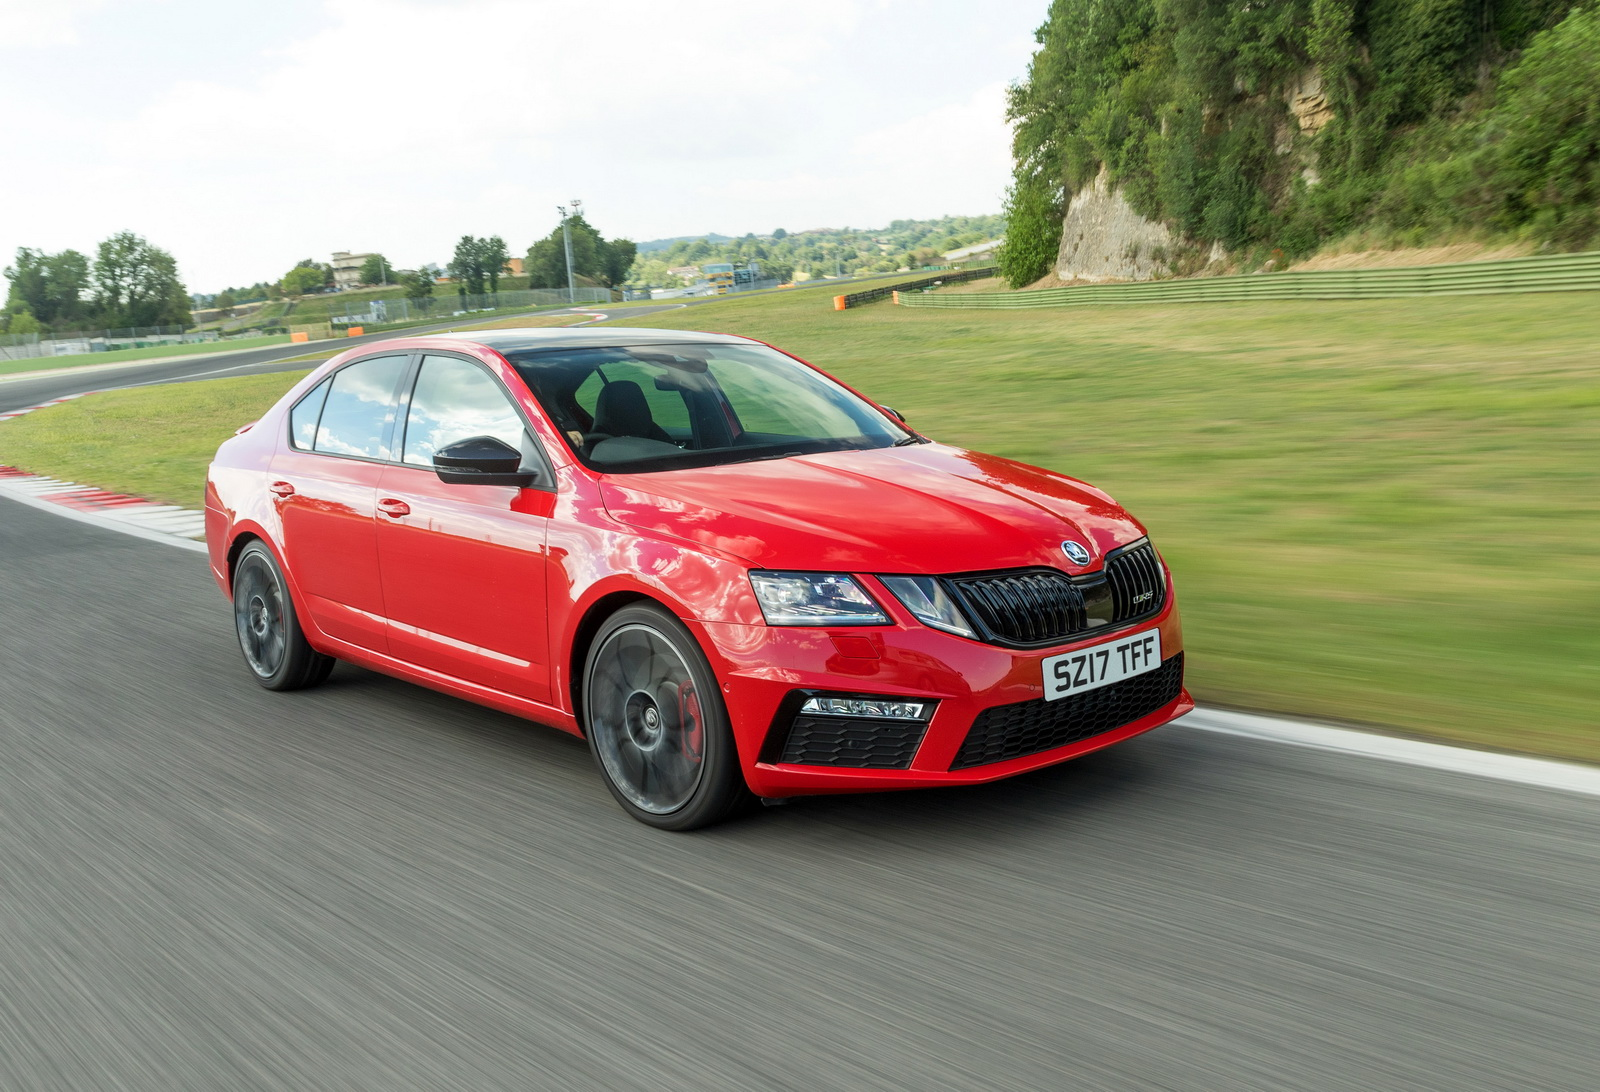 2018 Skoda Octavia Vrs 245 Uk Pricing And Details Announced